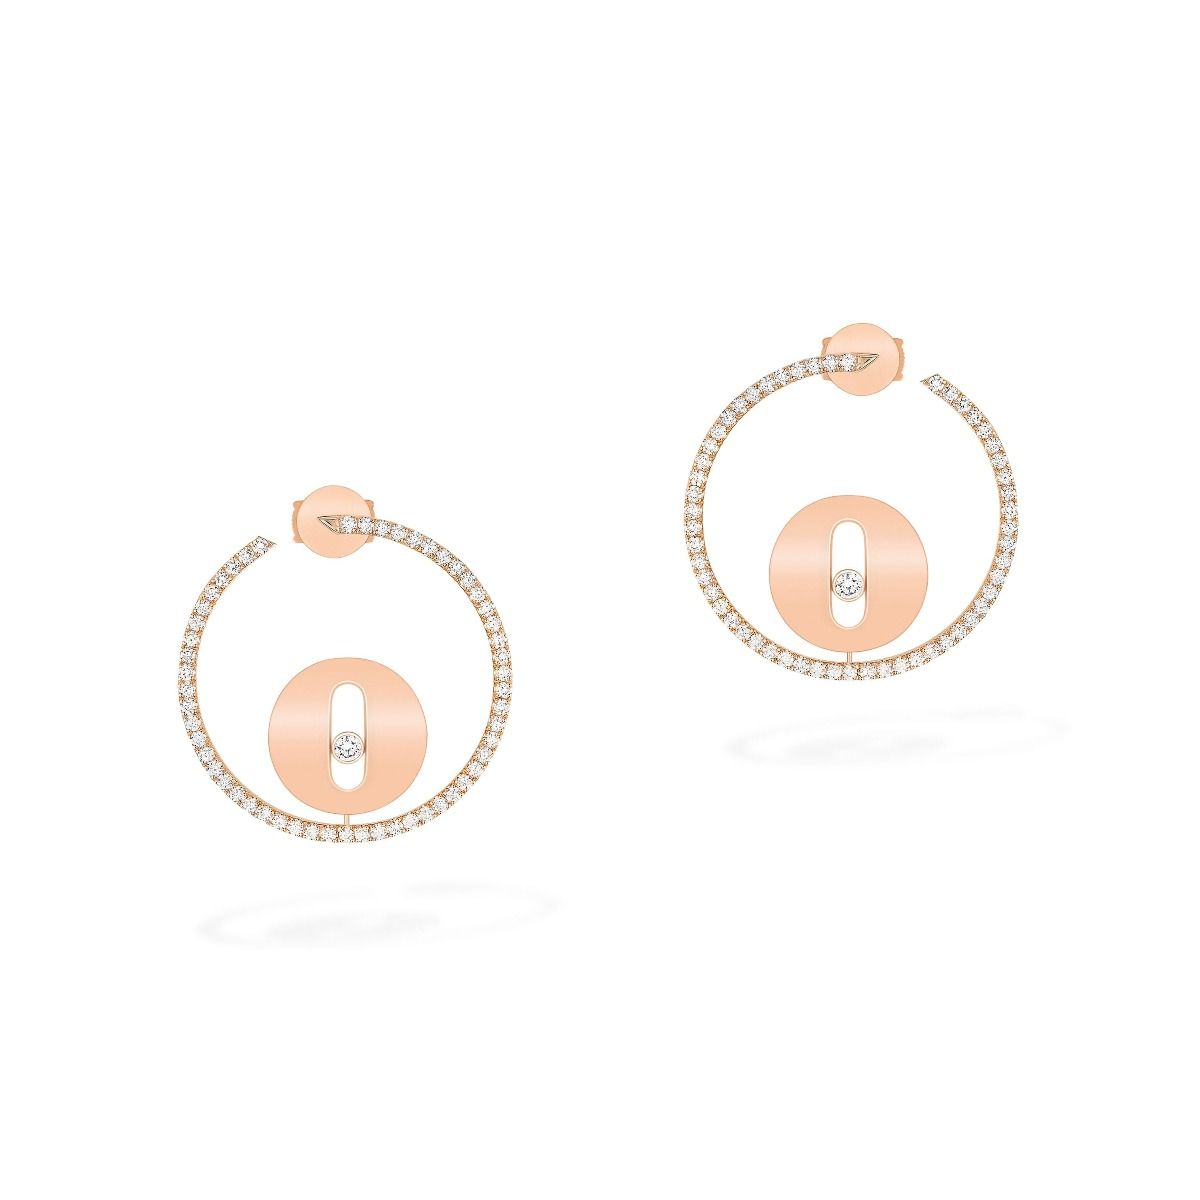 Créoles Lucky Move Pm Earrings - Pink Gold